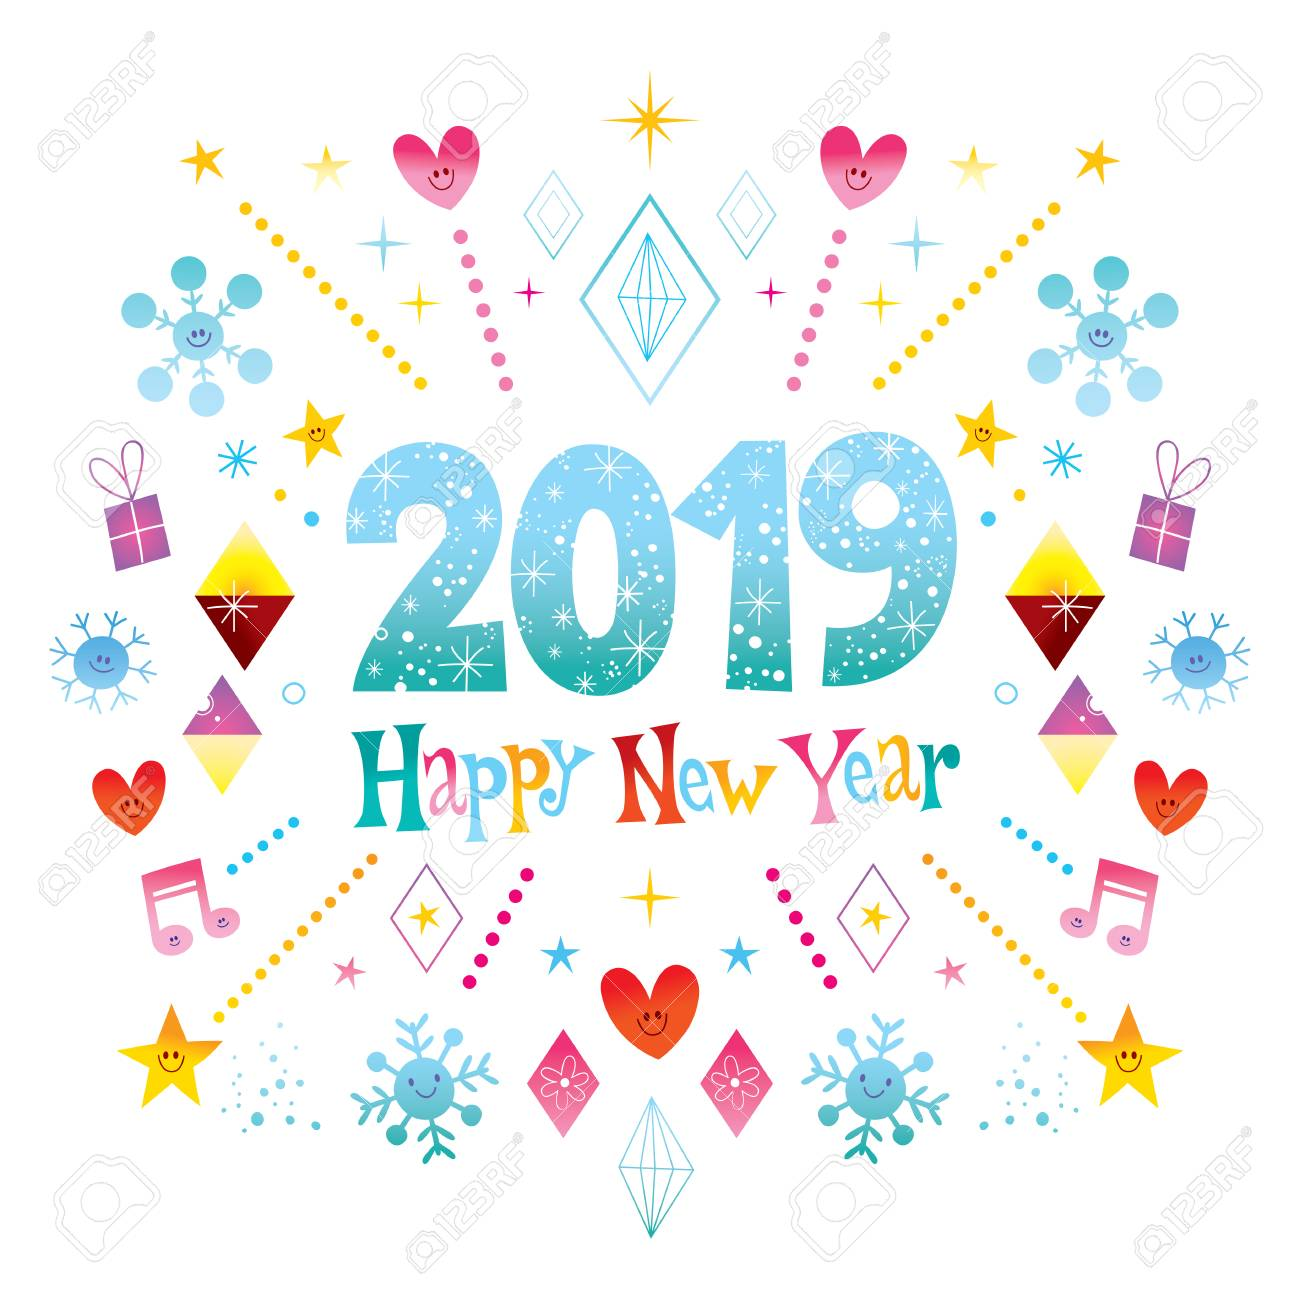 Happy New Year 2019 greeting card.